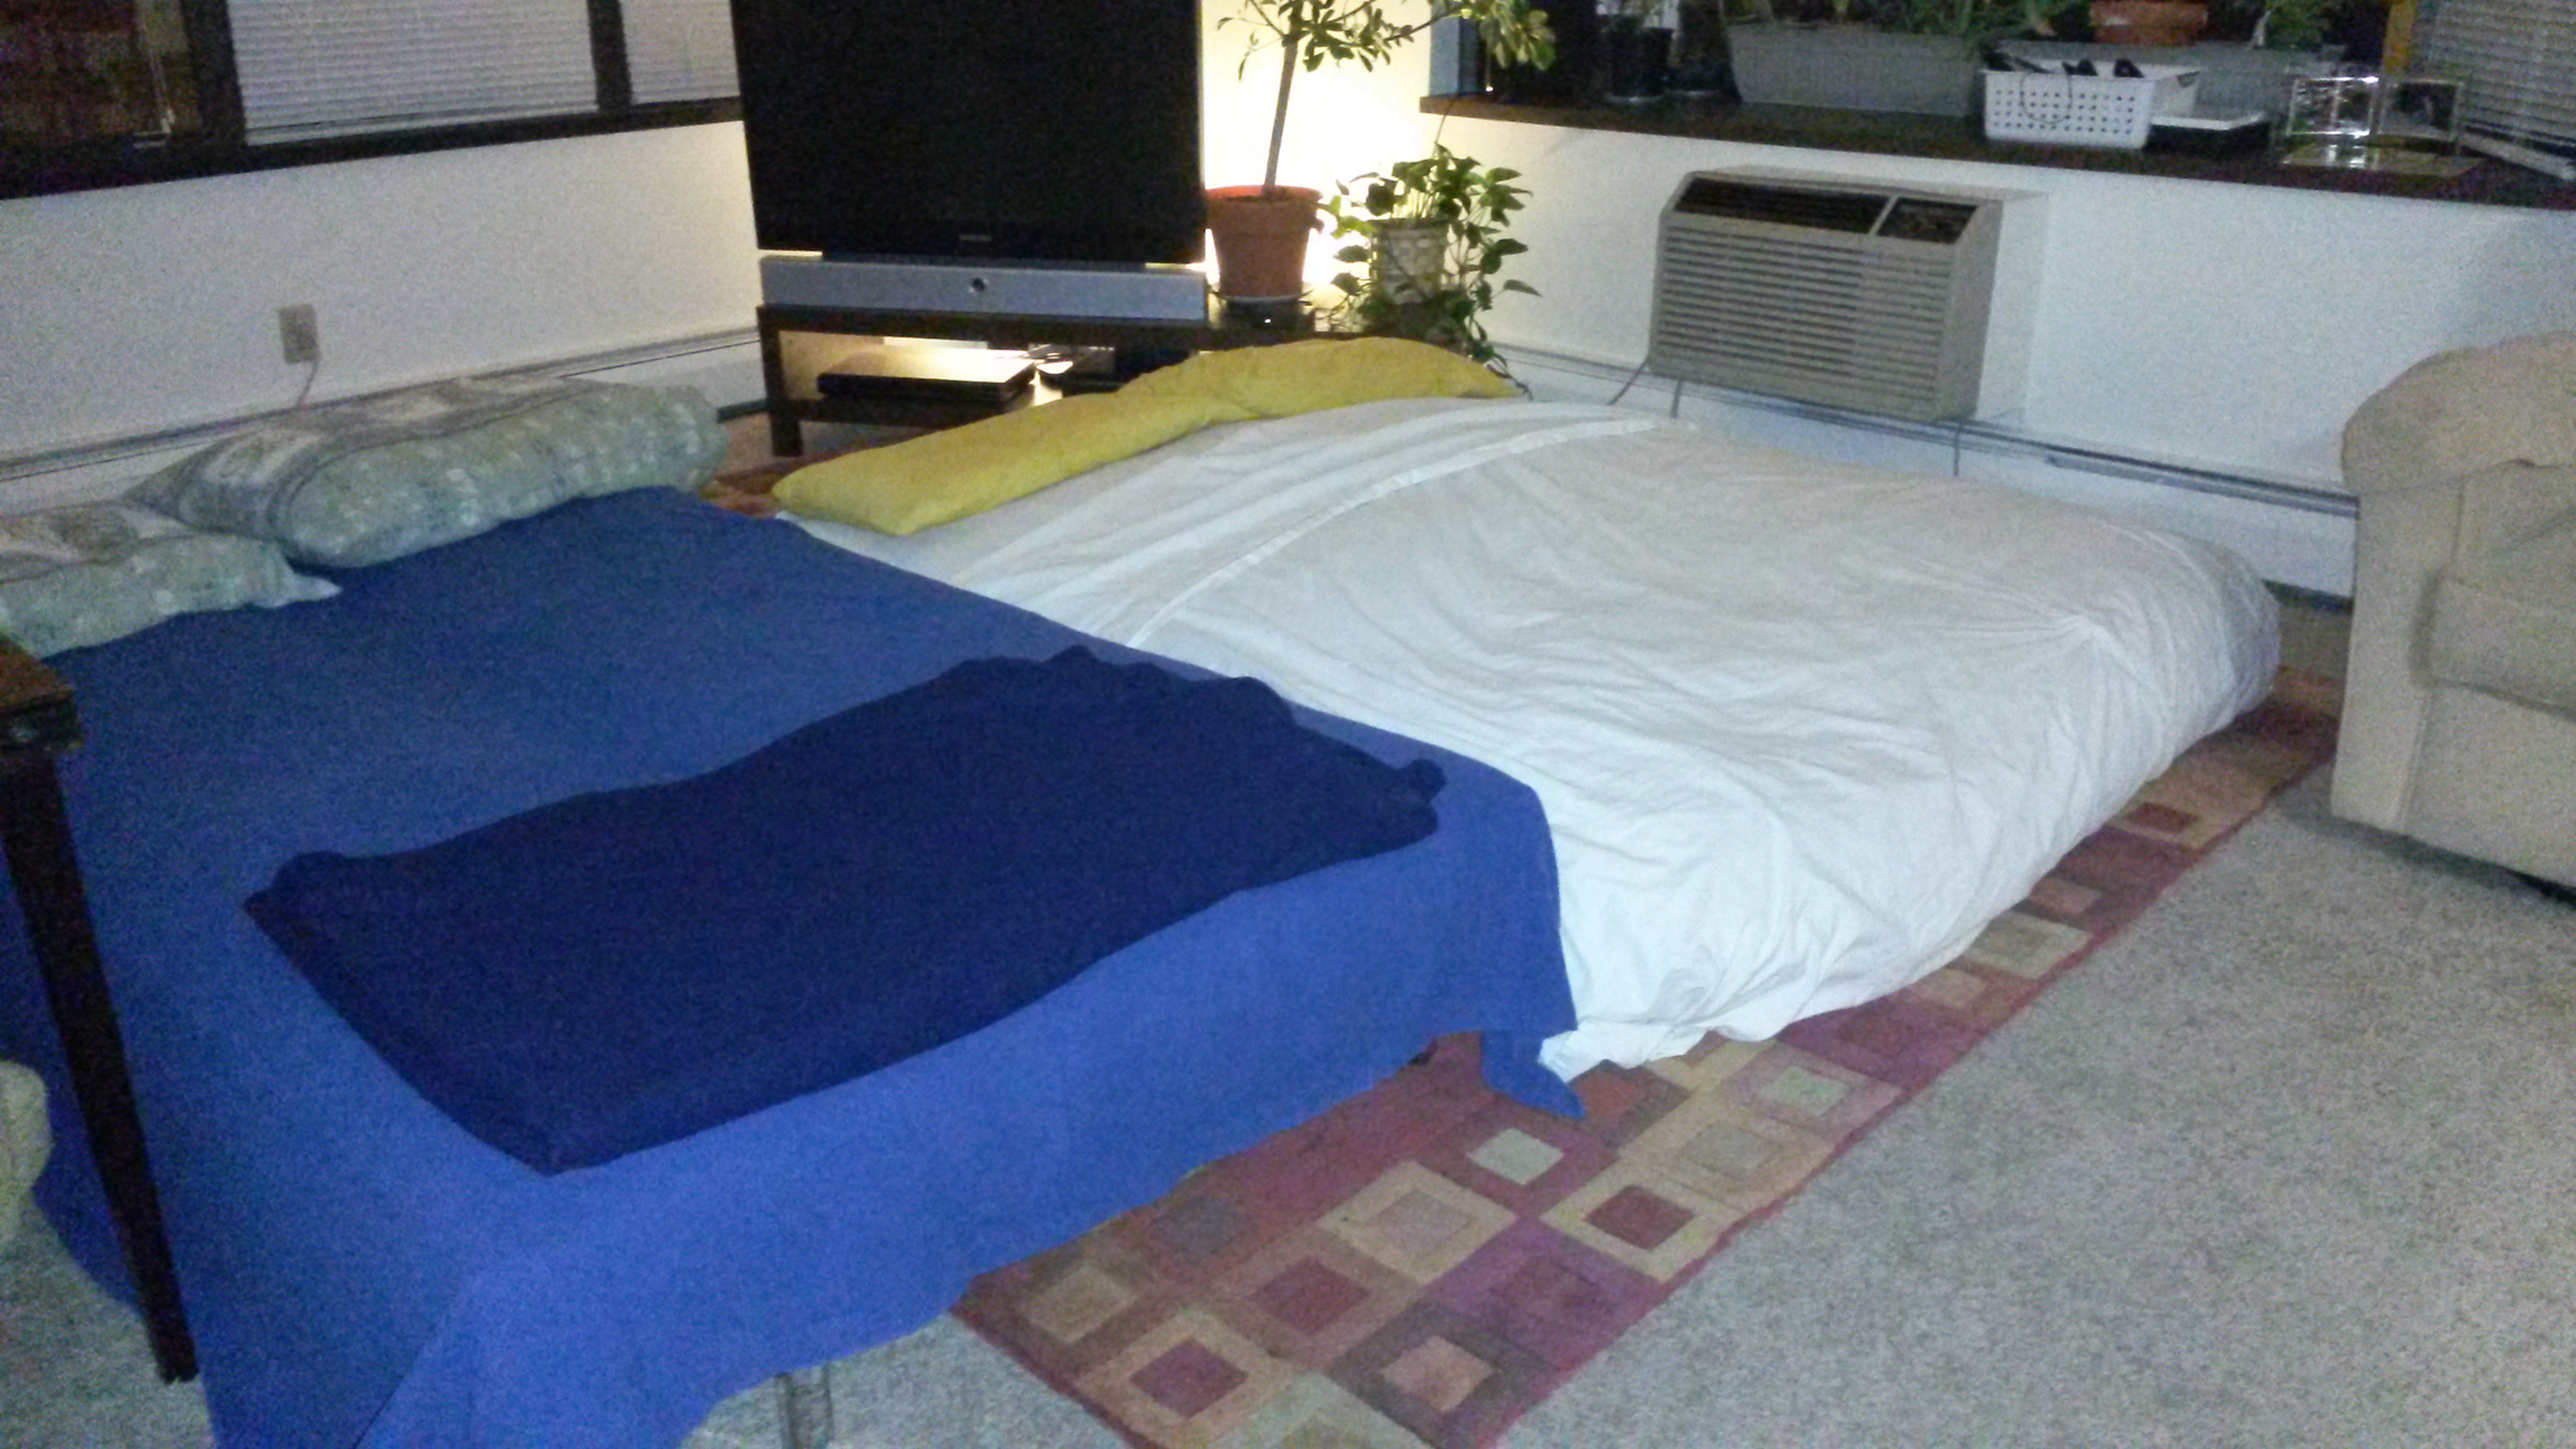 Guest Beds In The Living Room